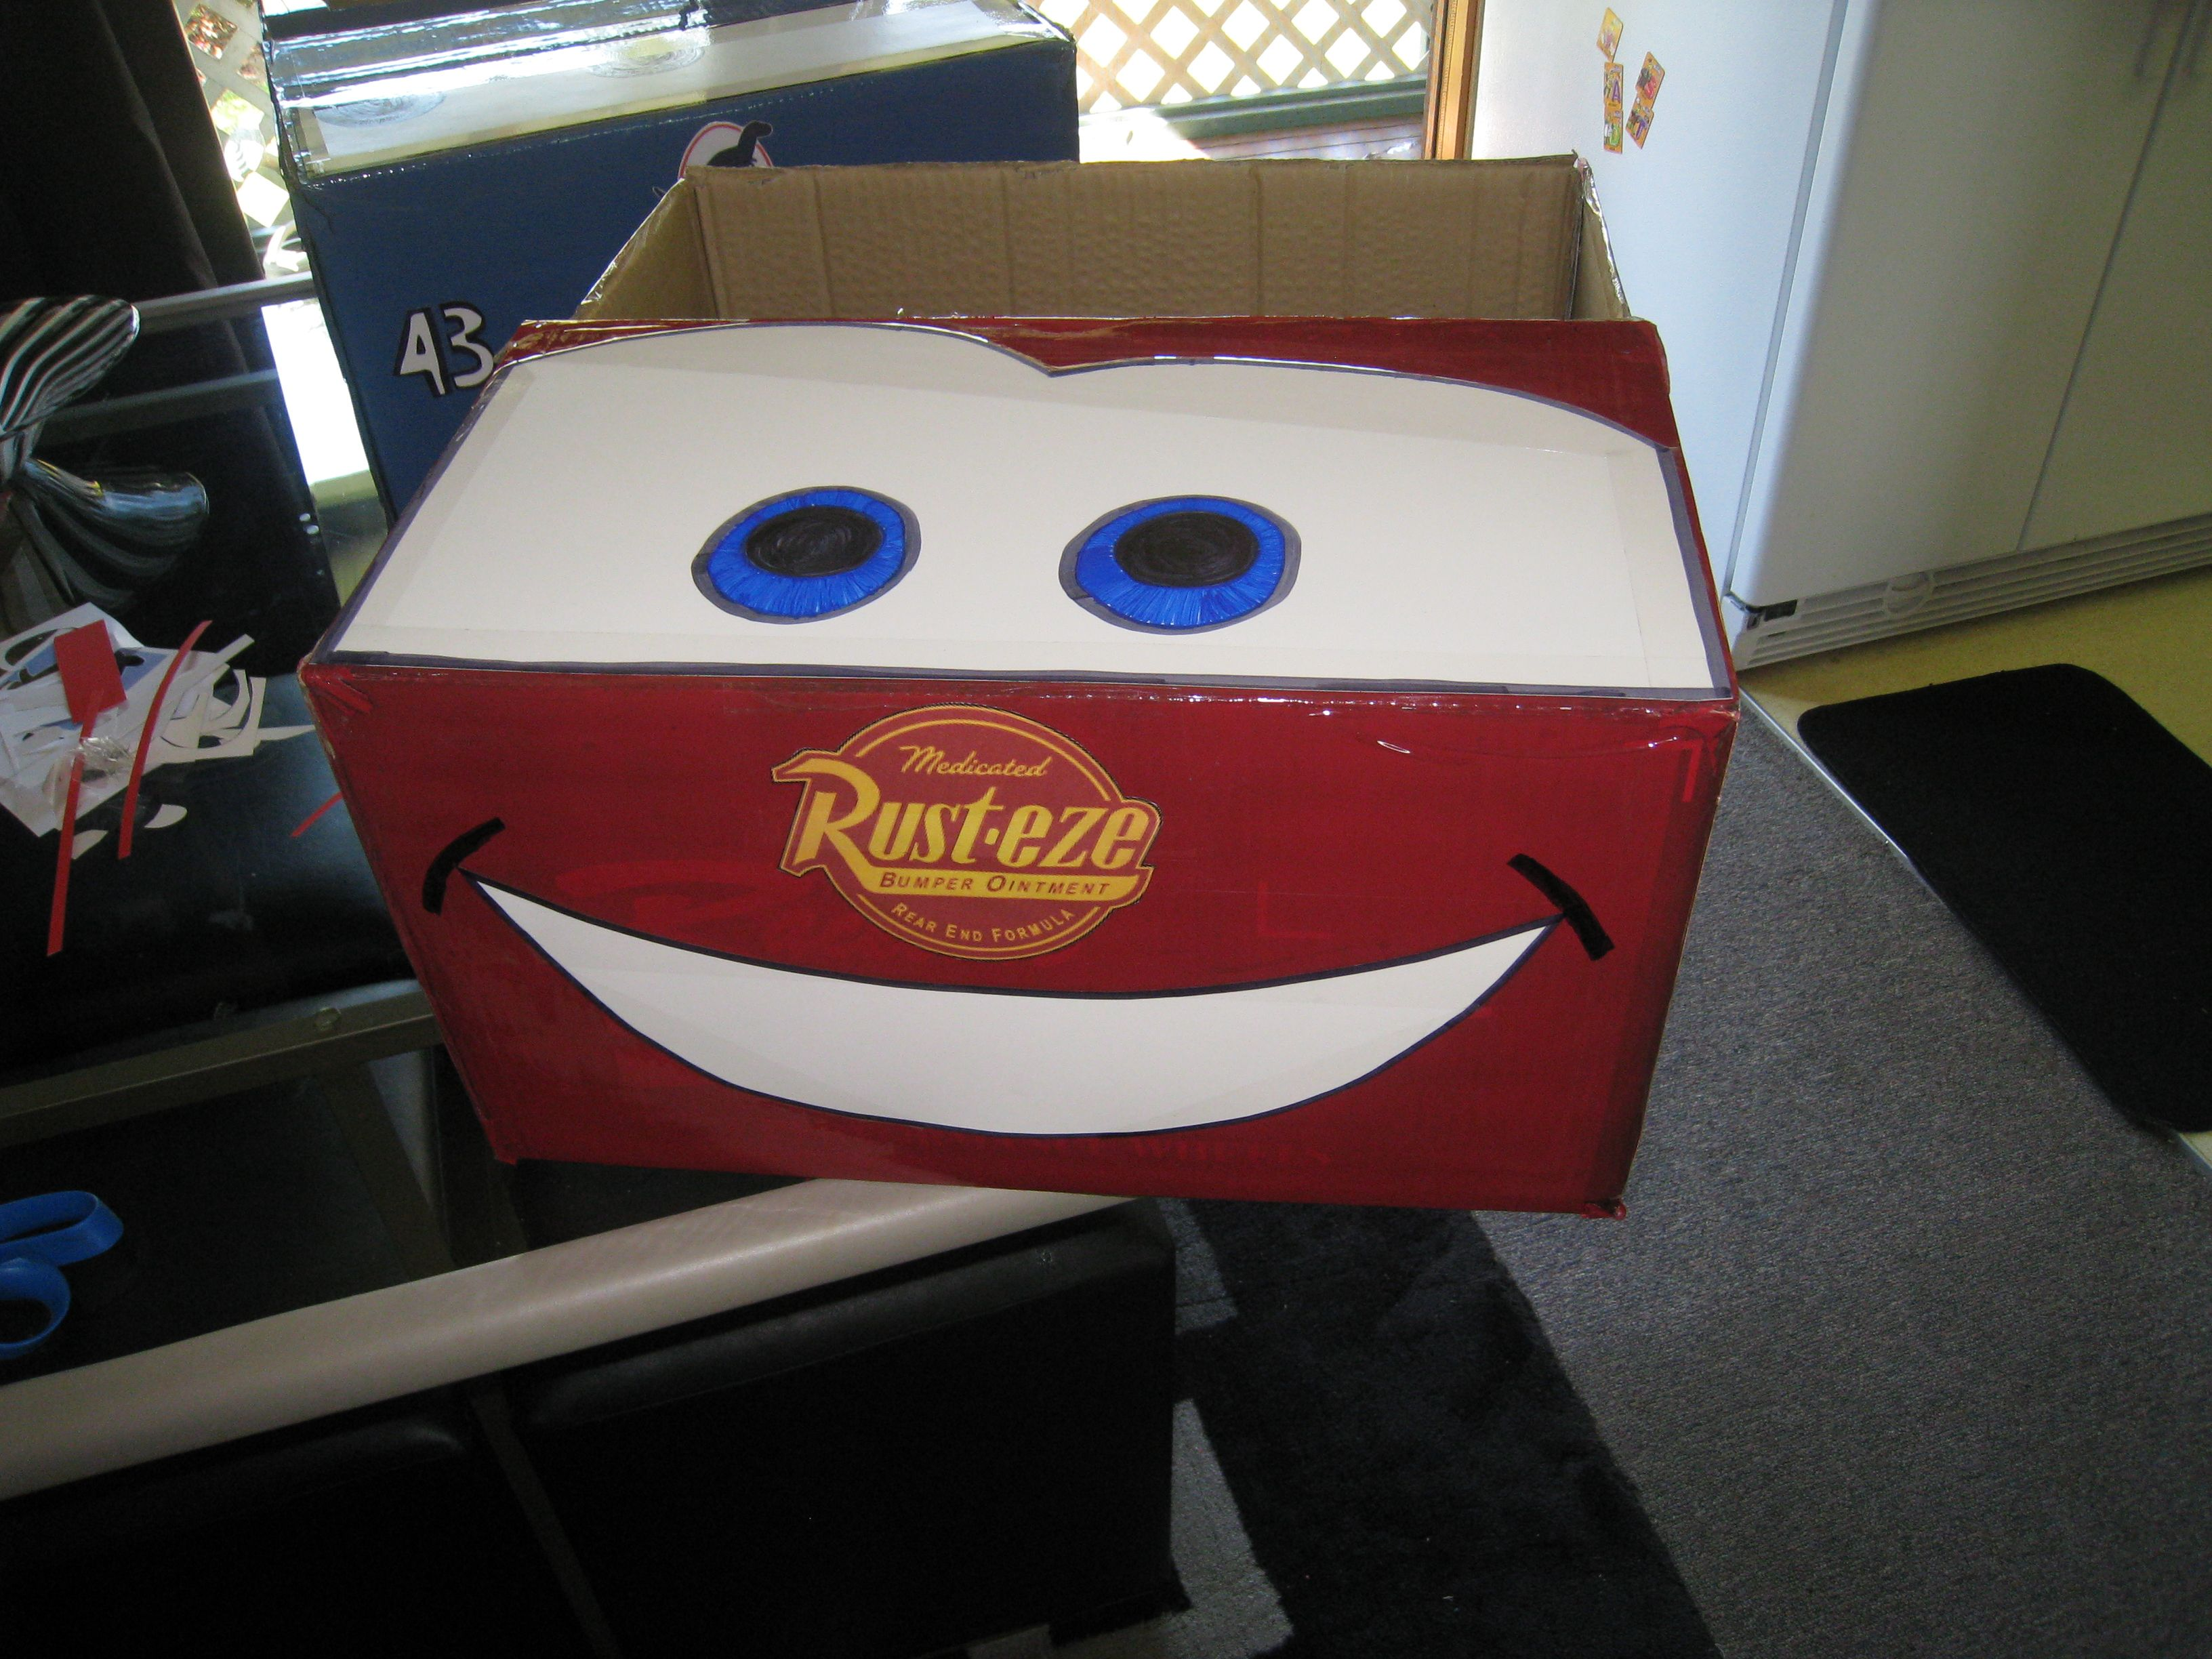 Lightning mcqueen cardboard box spray paint draw the face print out the logos